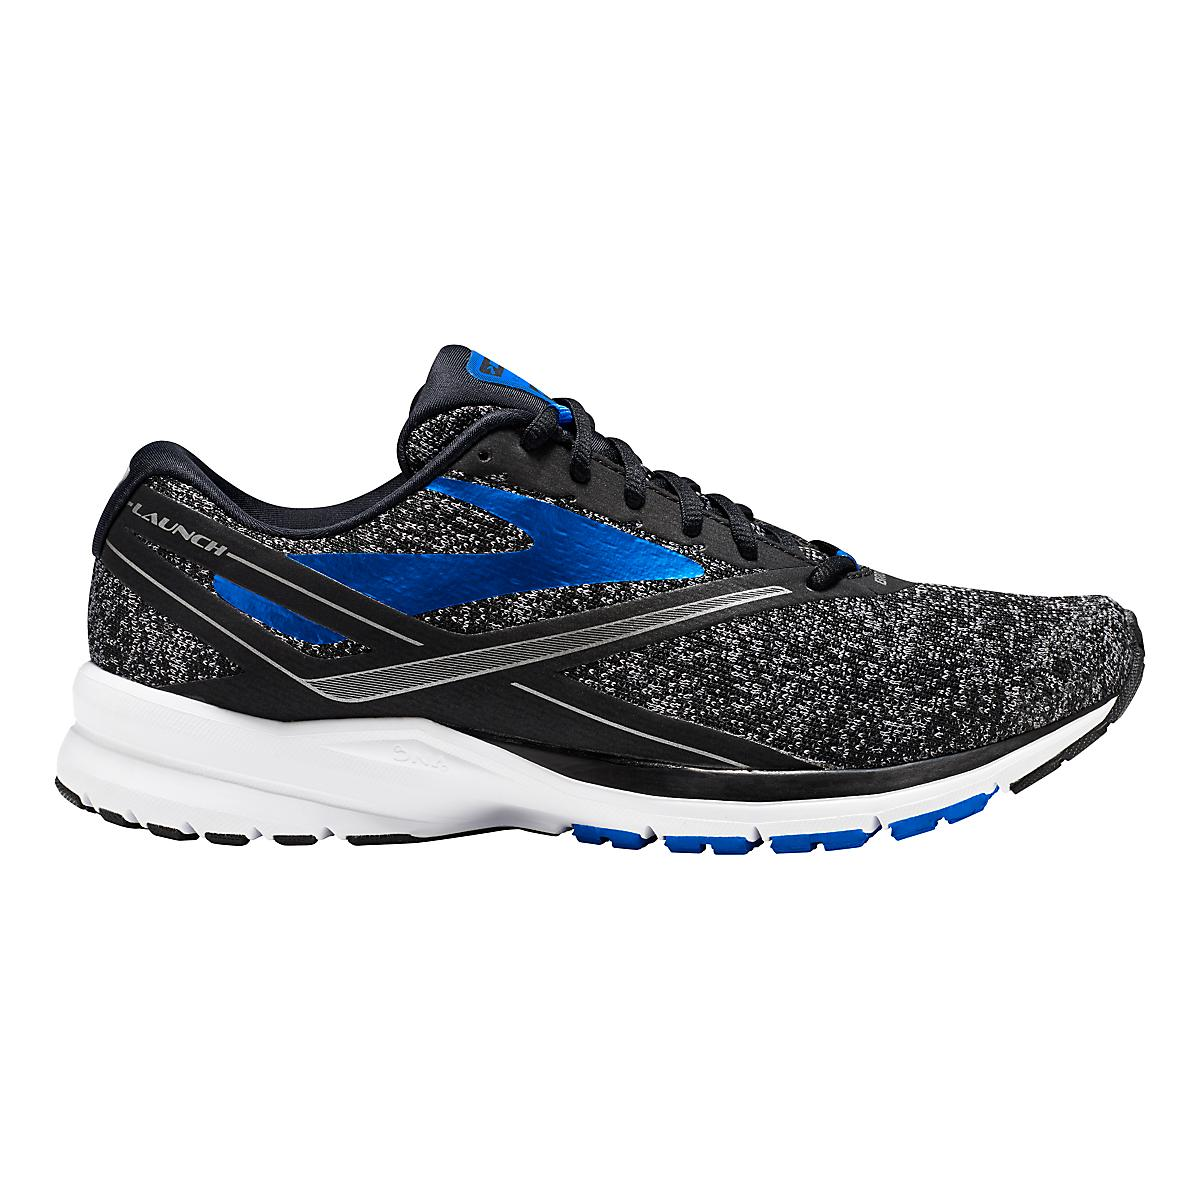 2be8896949c Mens Brooks Launch 4 Running Shoe at Road Runner Sports